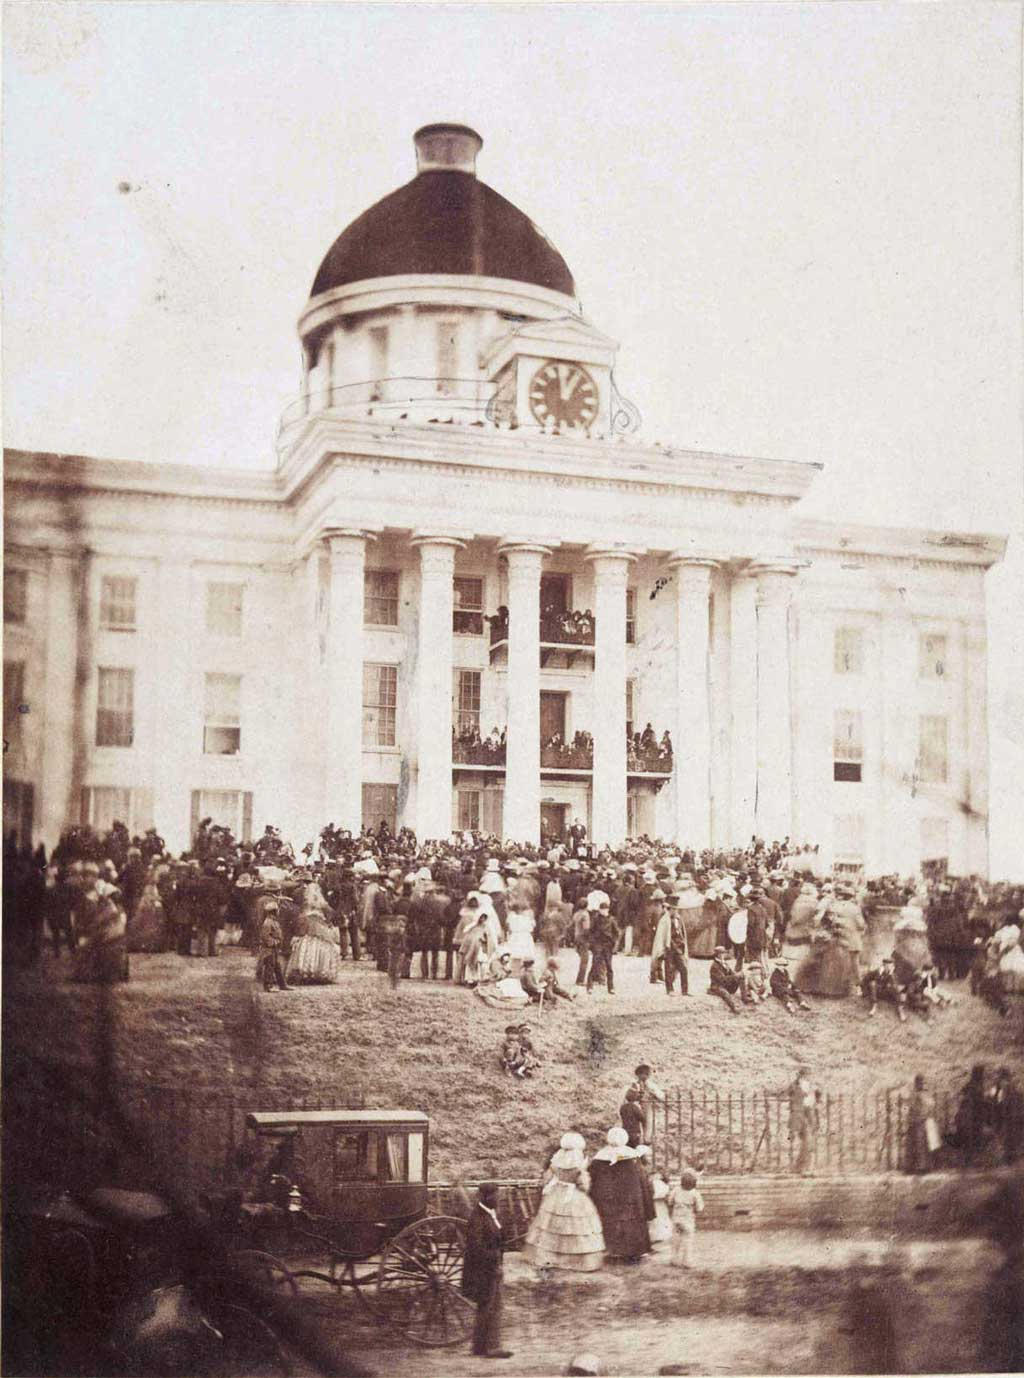 Crowd gathered in front of Alabama Capitol building for first inauguration of Jefferson Davis as President of the Confederate States of America at Montgomery, Alabama, February 18, 1861